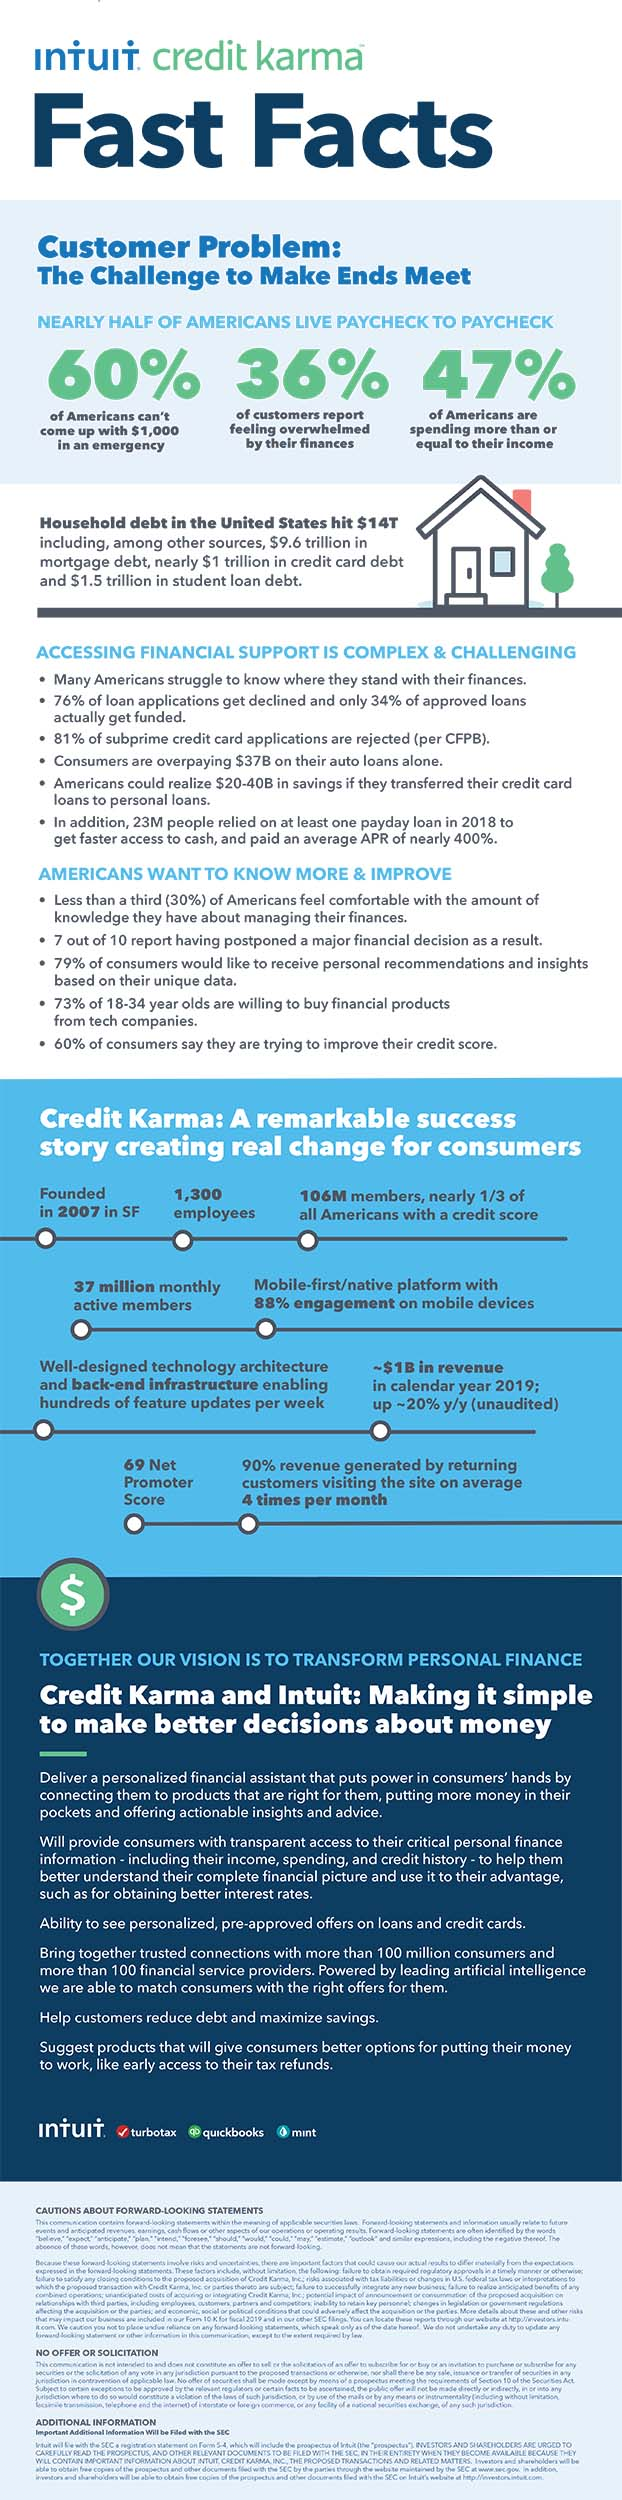 Intuit Credit Karma Fast Facts